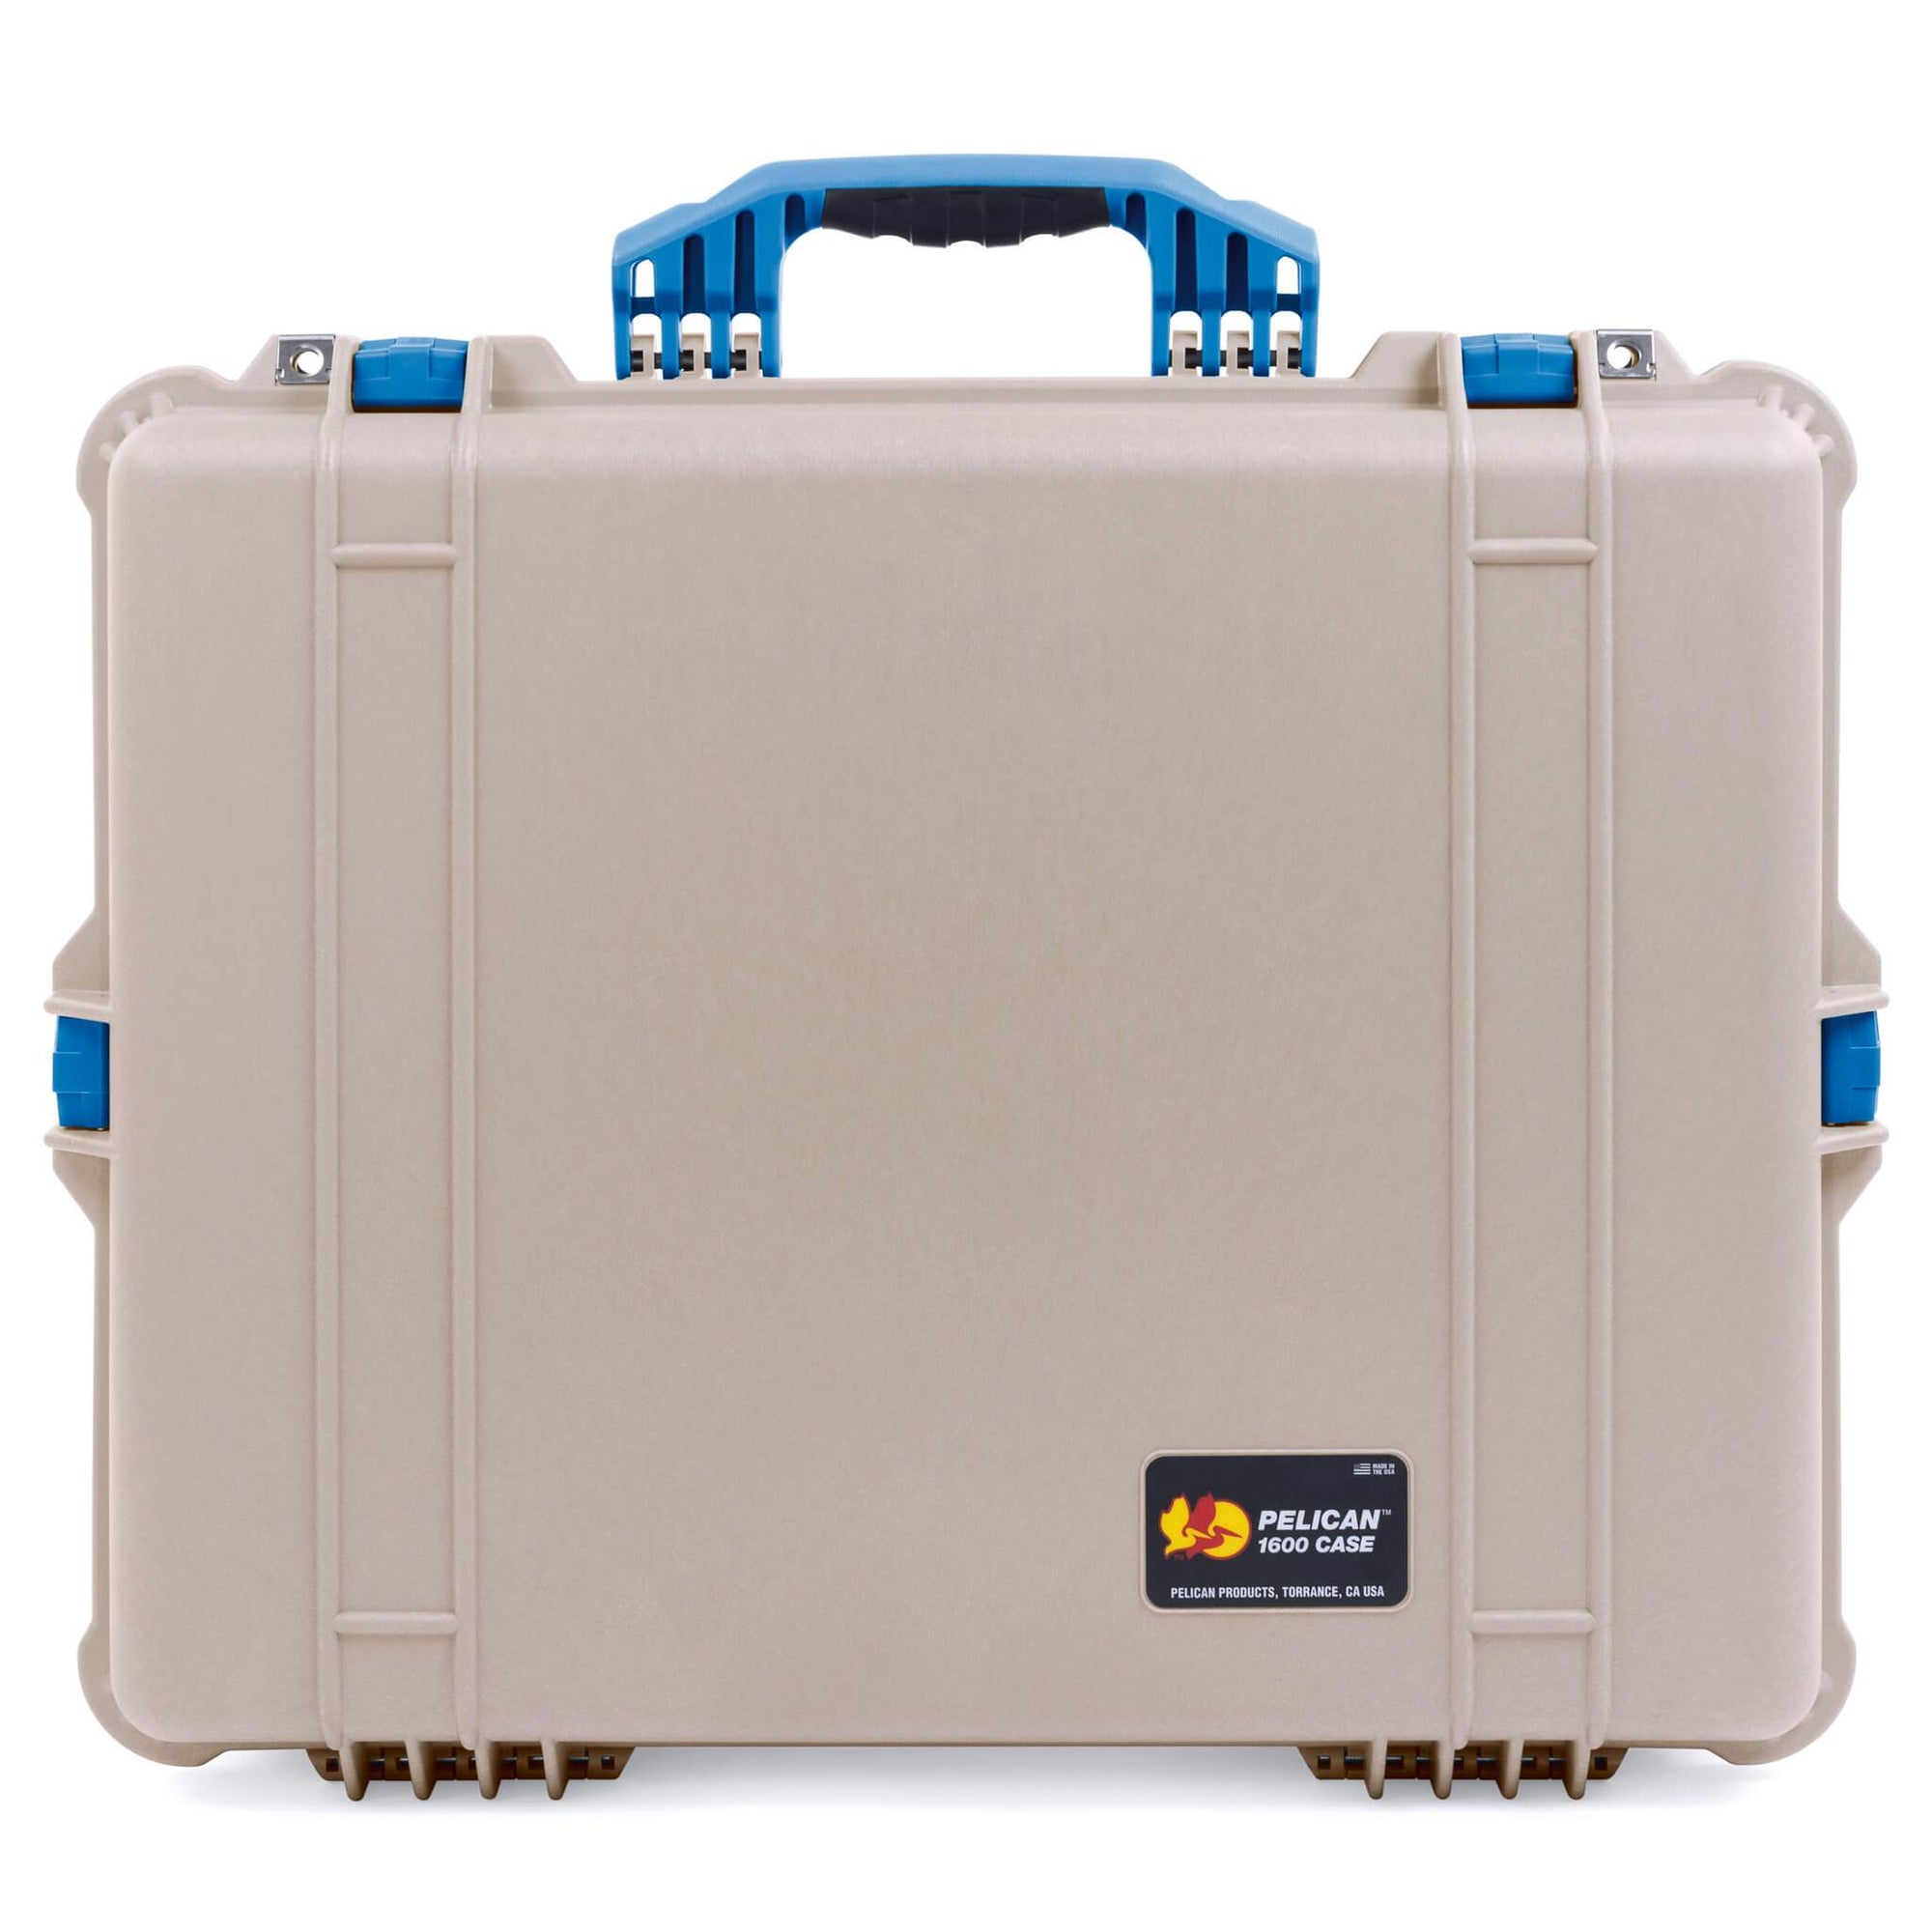 Pelican 1600 Case, Desert Tan with Blue Handle & Latches